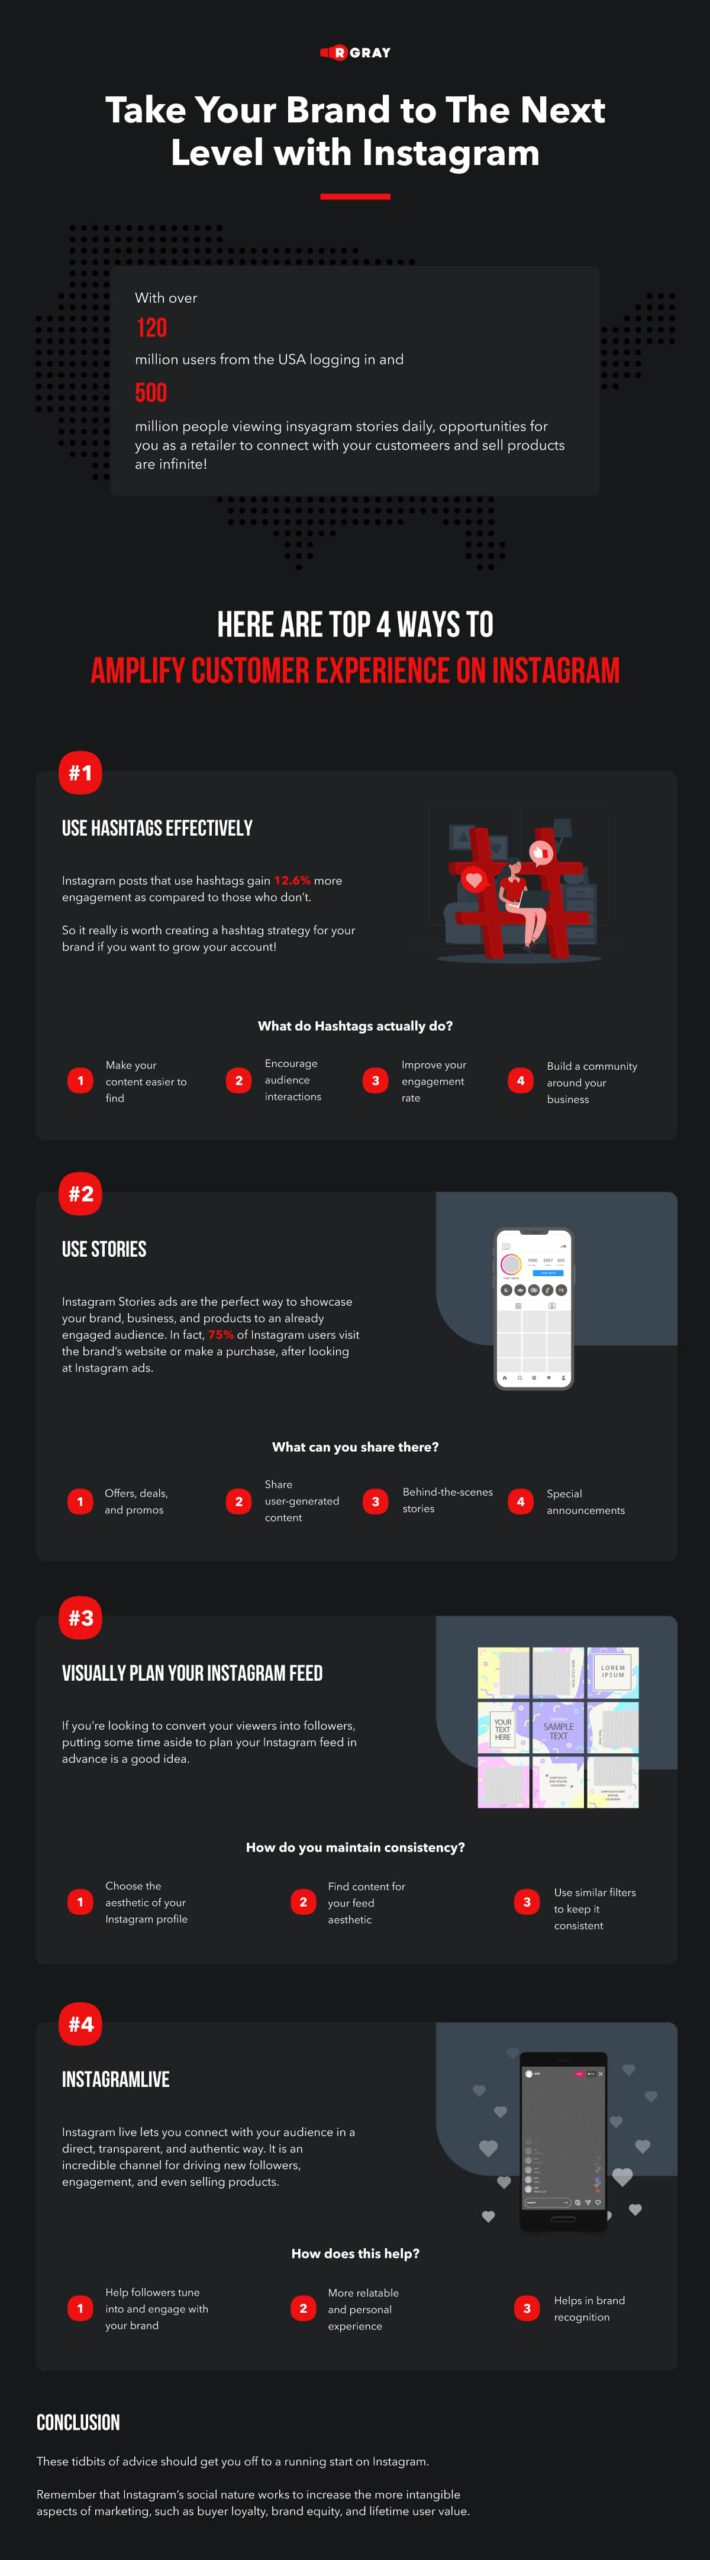 In the infographic, we'll show you how you can take your e-commerce brand on Instagram to the next level.